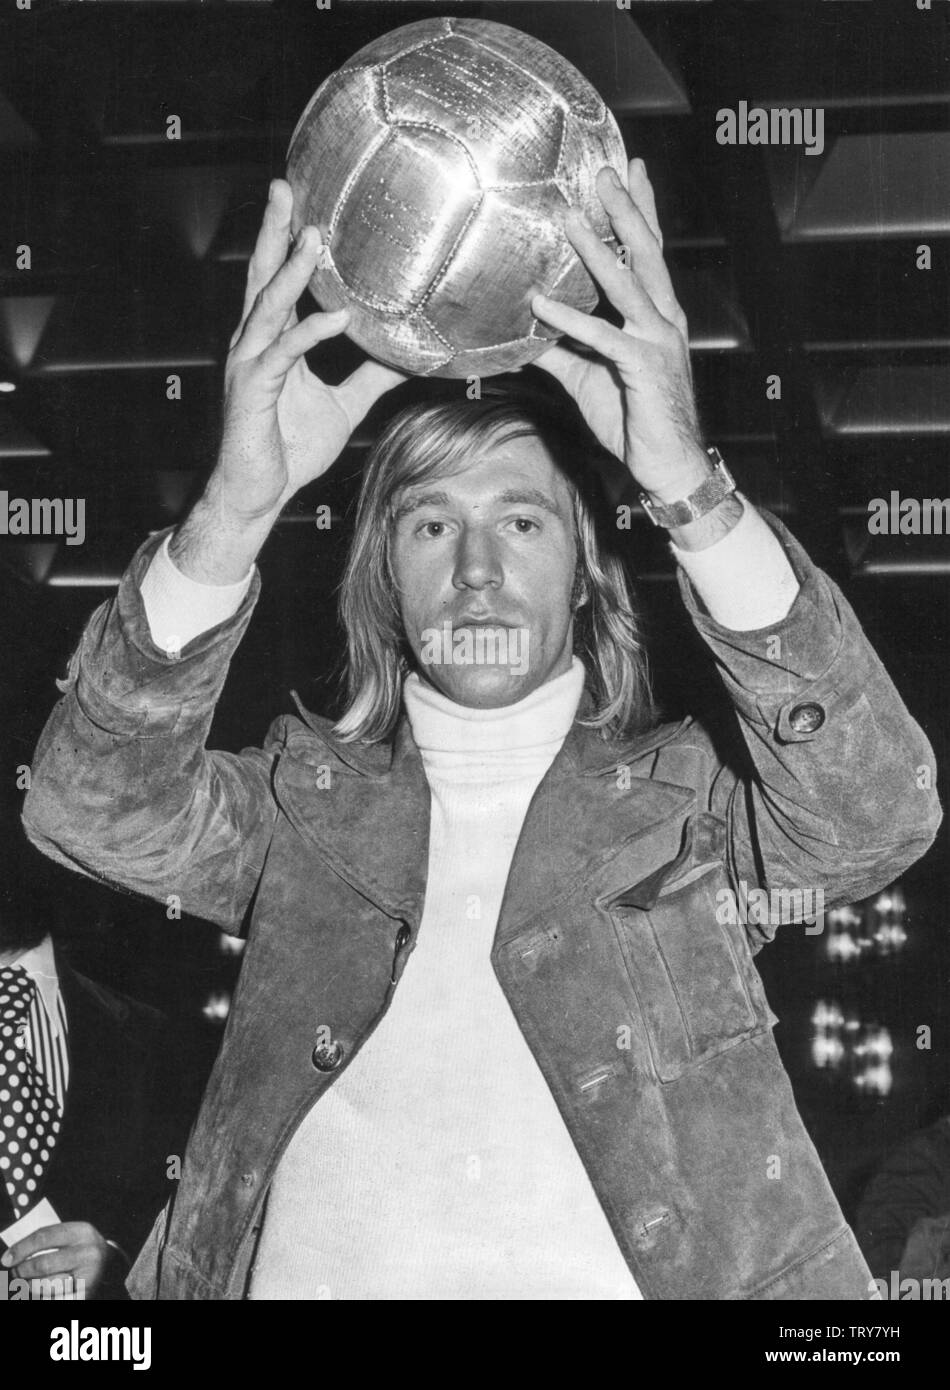 German professional soccer player Guenter Netzer marvels on 20 October 1972 at the Gemstone Day in Düsseldorf at Pele's real gold football, which he received in 1969 for his 1,000 goal. Netzer was born on 14 September 1944 in Mönchengladbach. | usage worldwide - Stock Image